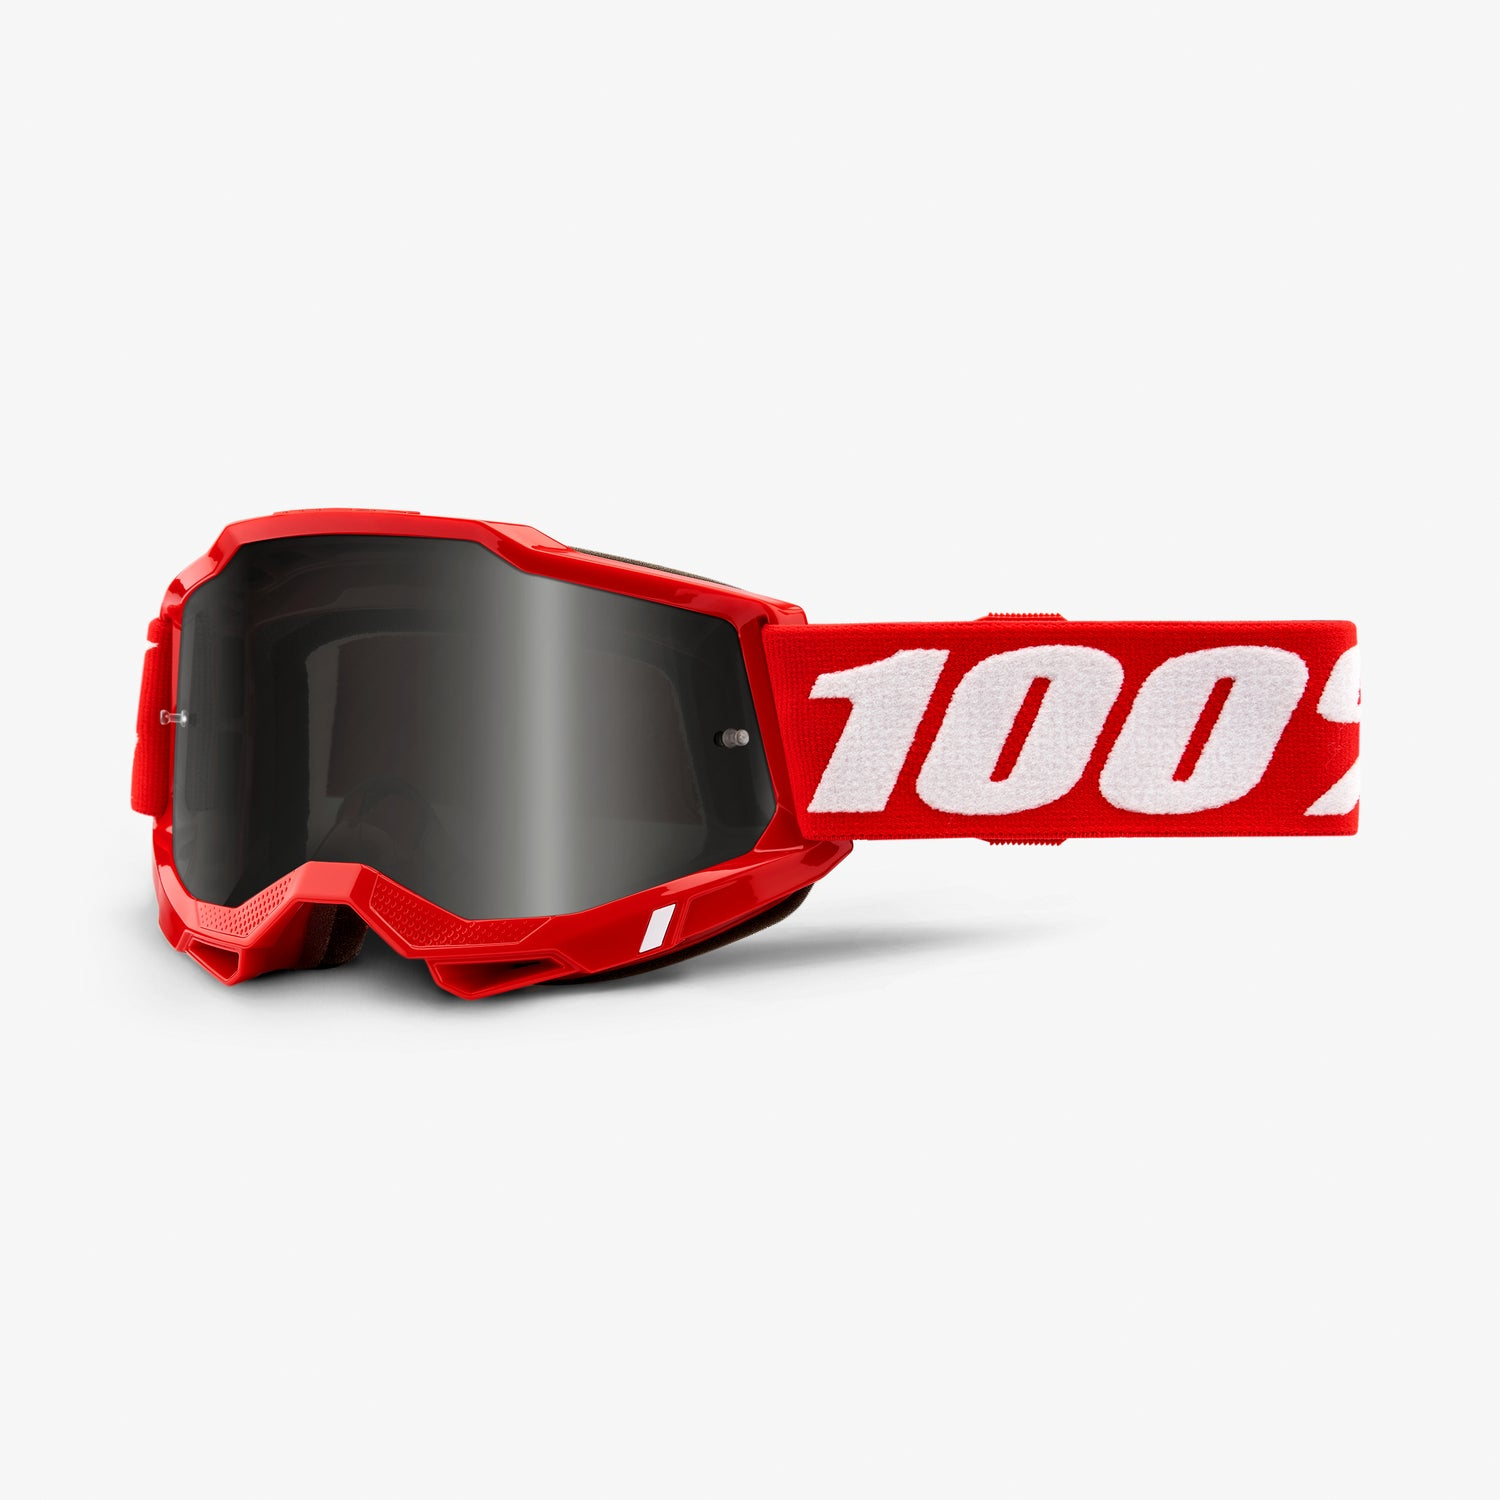 ACCURI 2 Sand Goggle Red - Smoke Lens